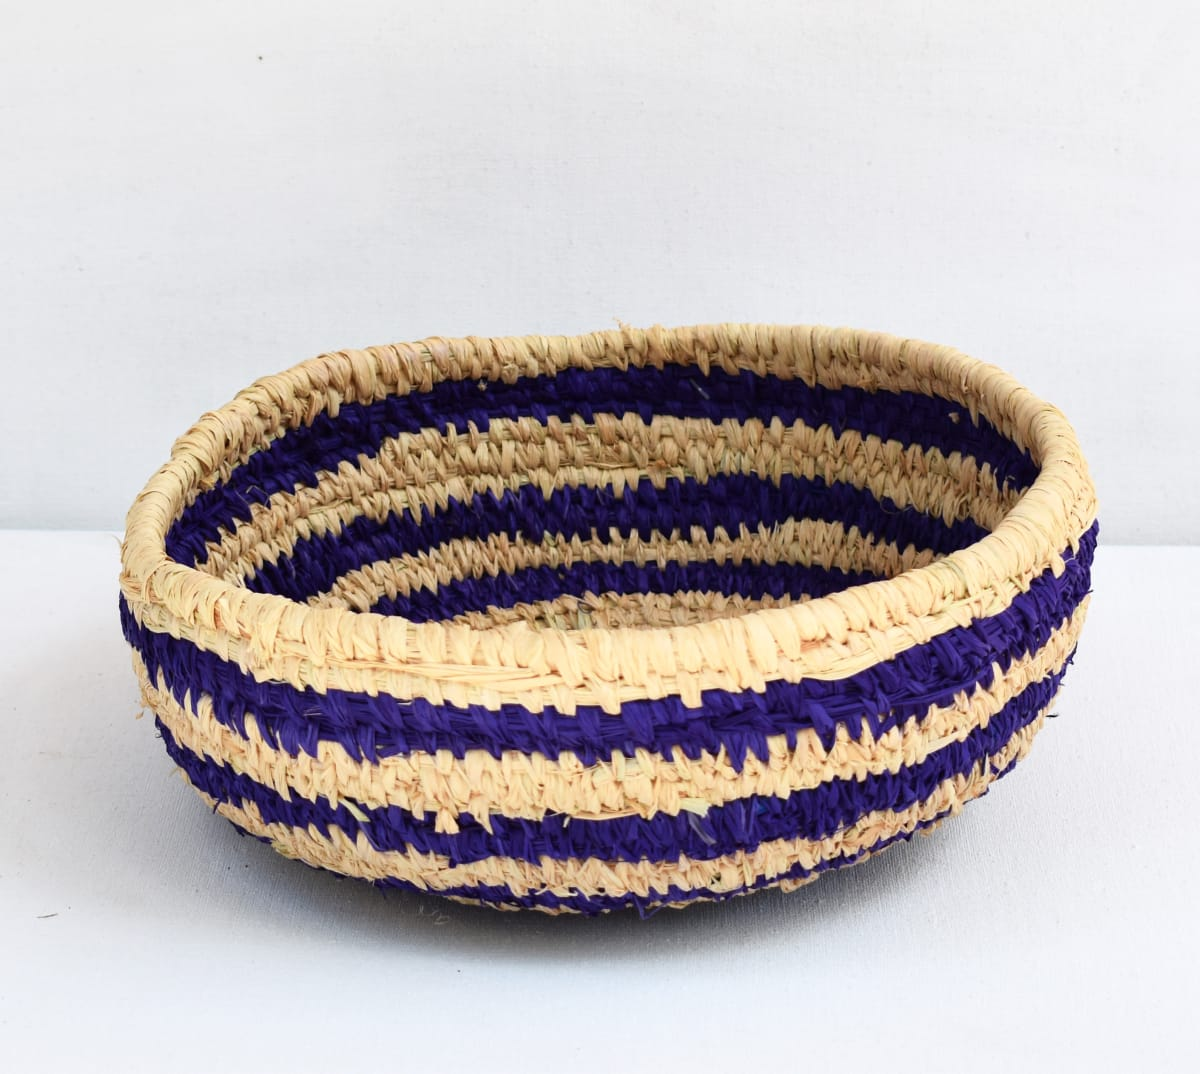 Julie Anderson Large round tall basket tjanpi, raffia and yarn 30 x 10 cm